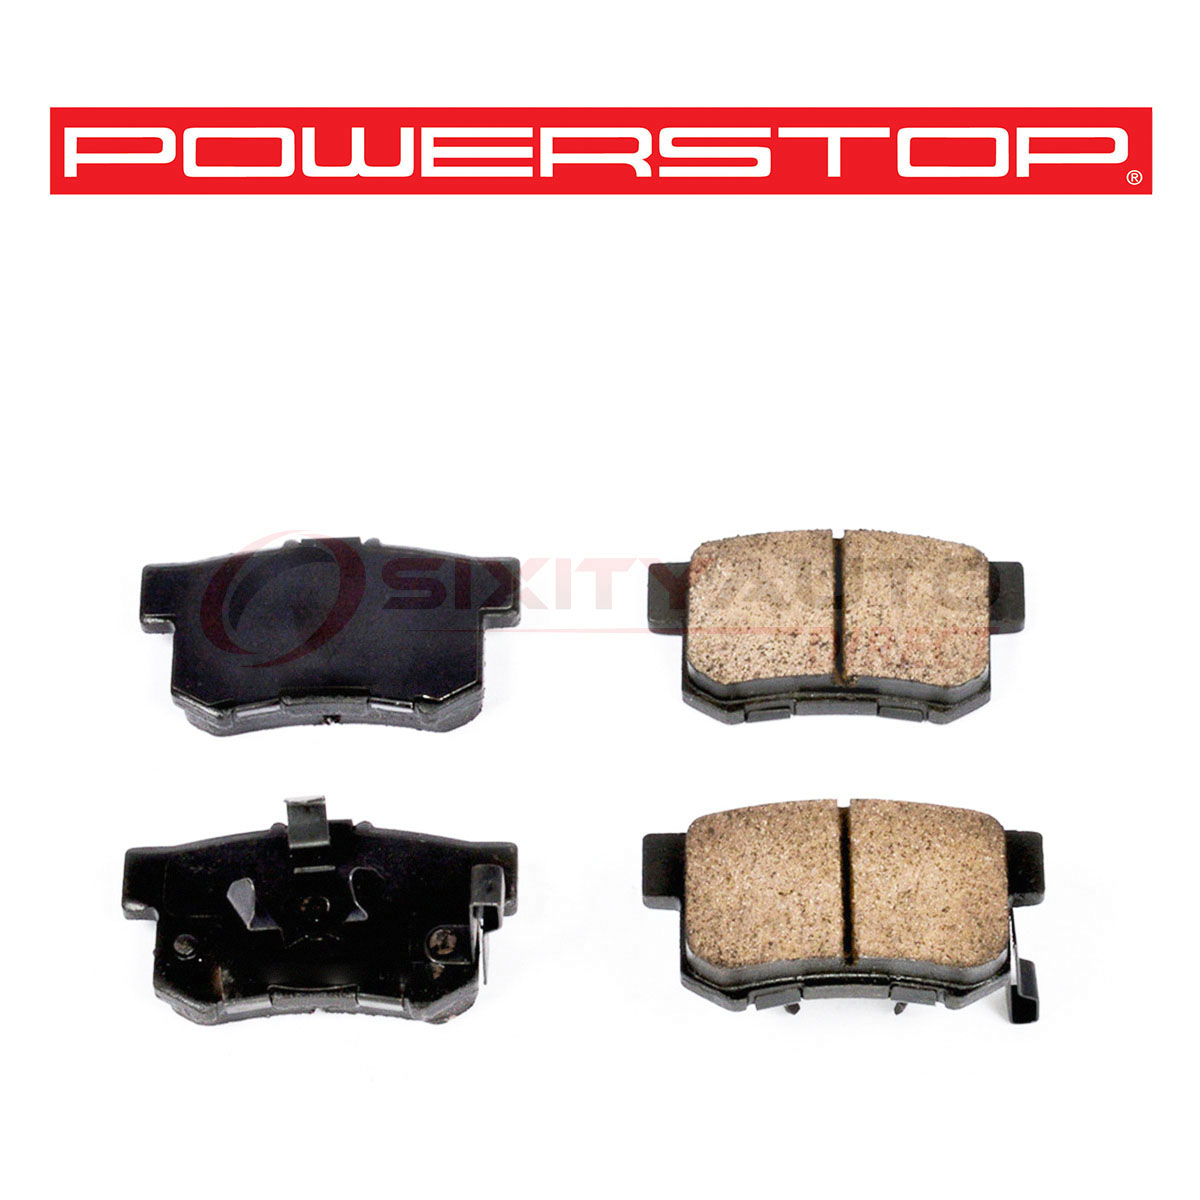 D898 FITS VEHICLES ON CHART BRAND NEW POWER STOP REAR BRAKE PADS 16-898